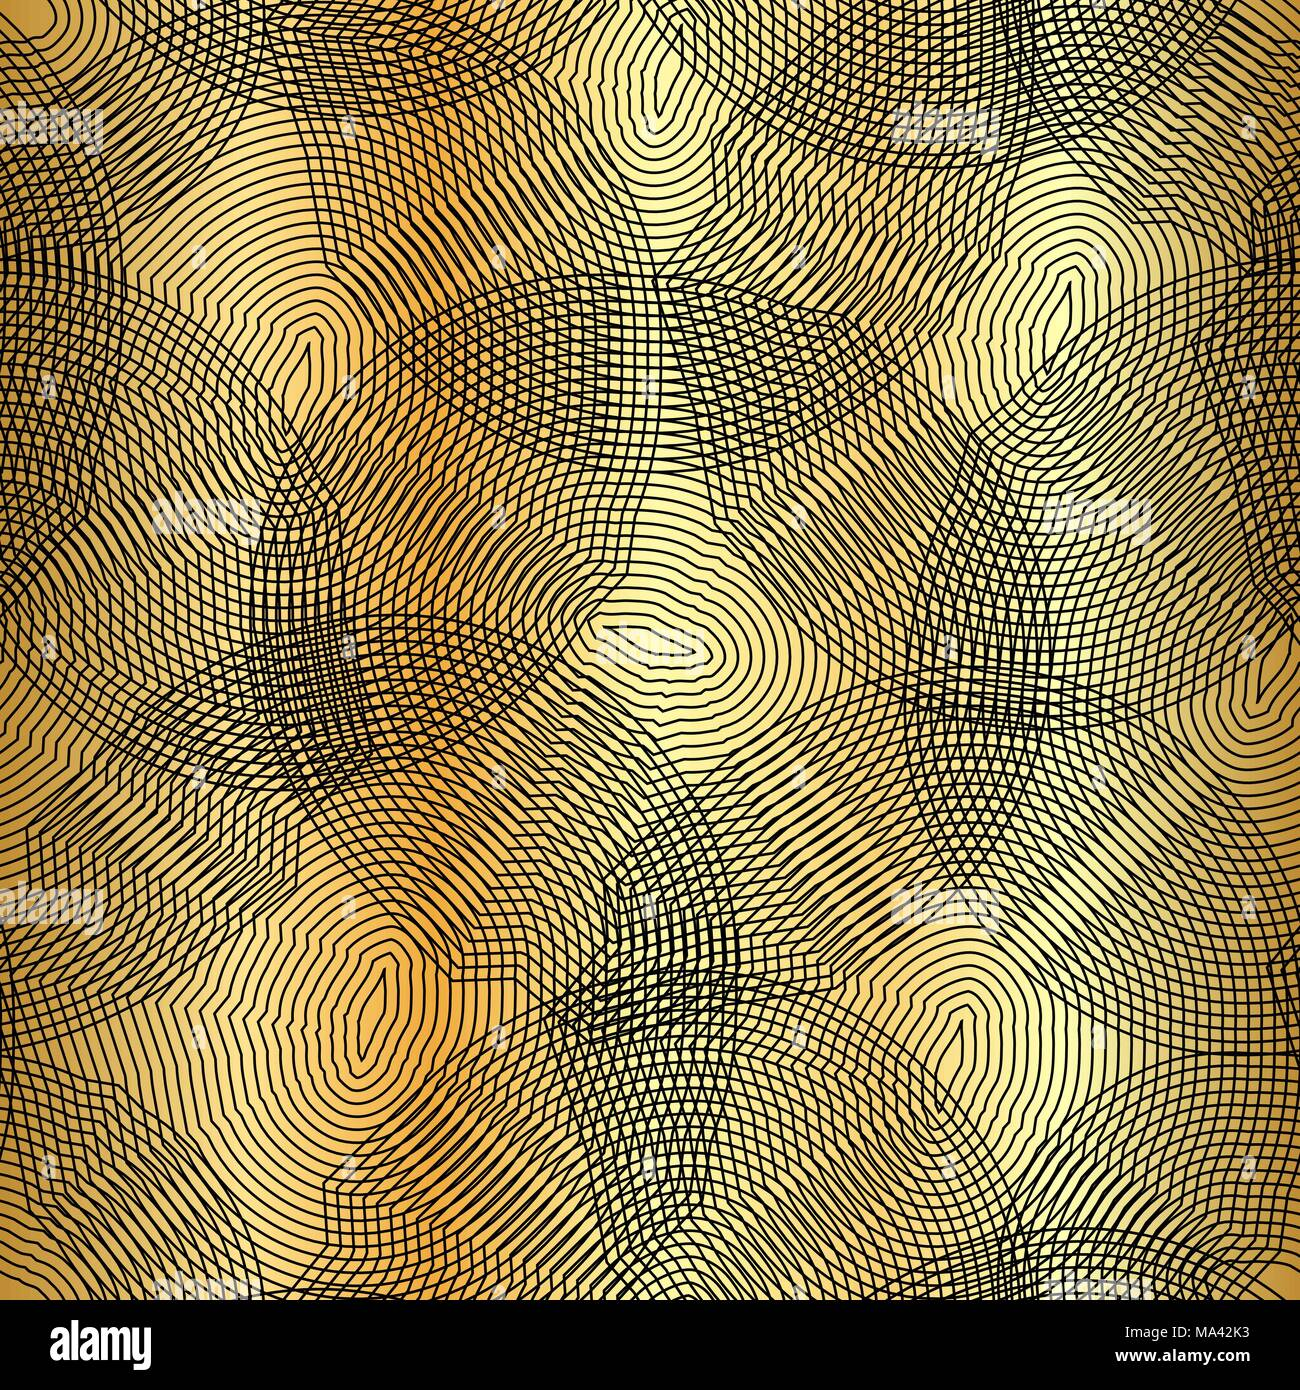 Vector monochrome seamless pattern, curved lines, black & gold background. Abstract dynamical rippled surface, visual halftone 3D effect, illusion of movement, curvature. Design for tileable print - Stock Vector